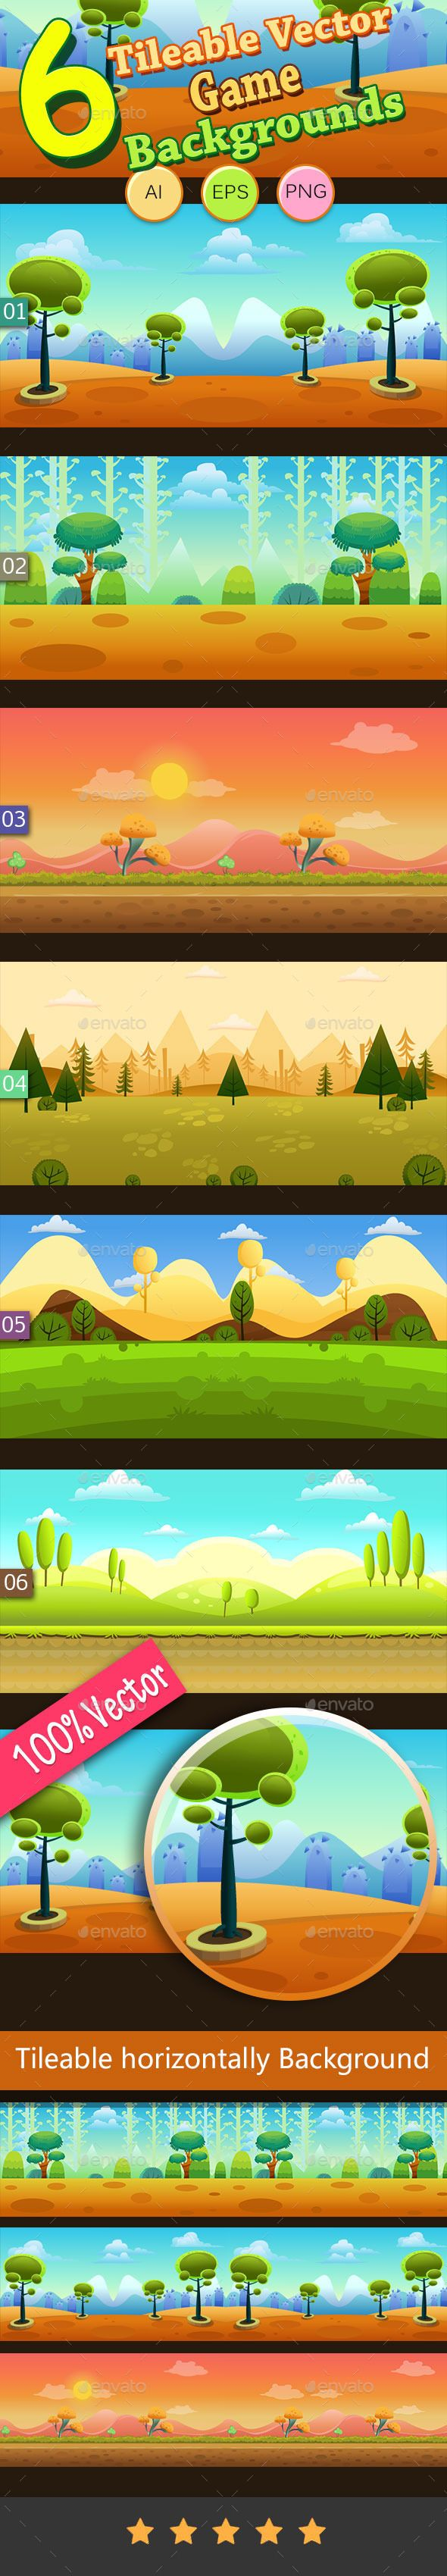 6 Tileable Vector Game Backgrounds — Vector EPS #mobile #background • Download here → https://graphicriver.net/item/6-tileable-vector-game-backgrounds/9842763?ref=pxcr